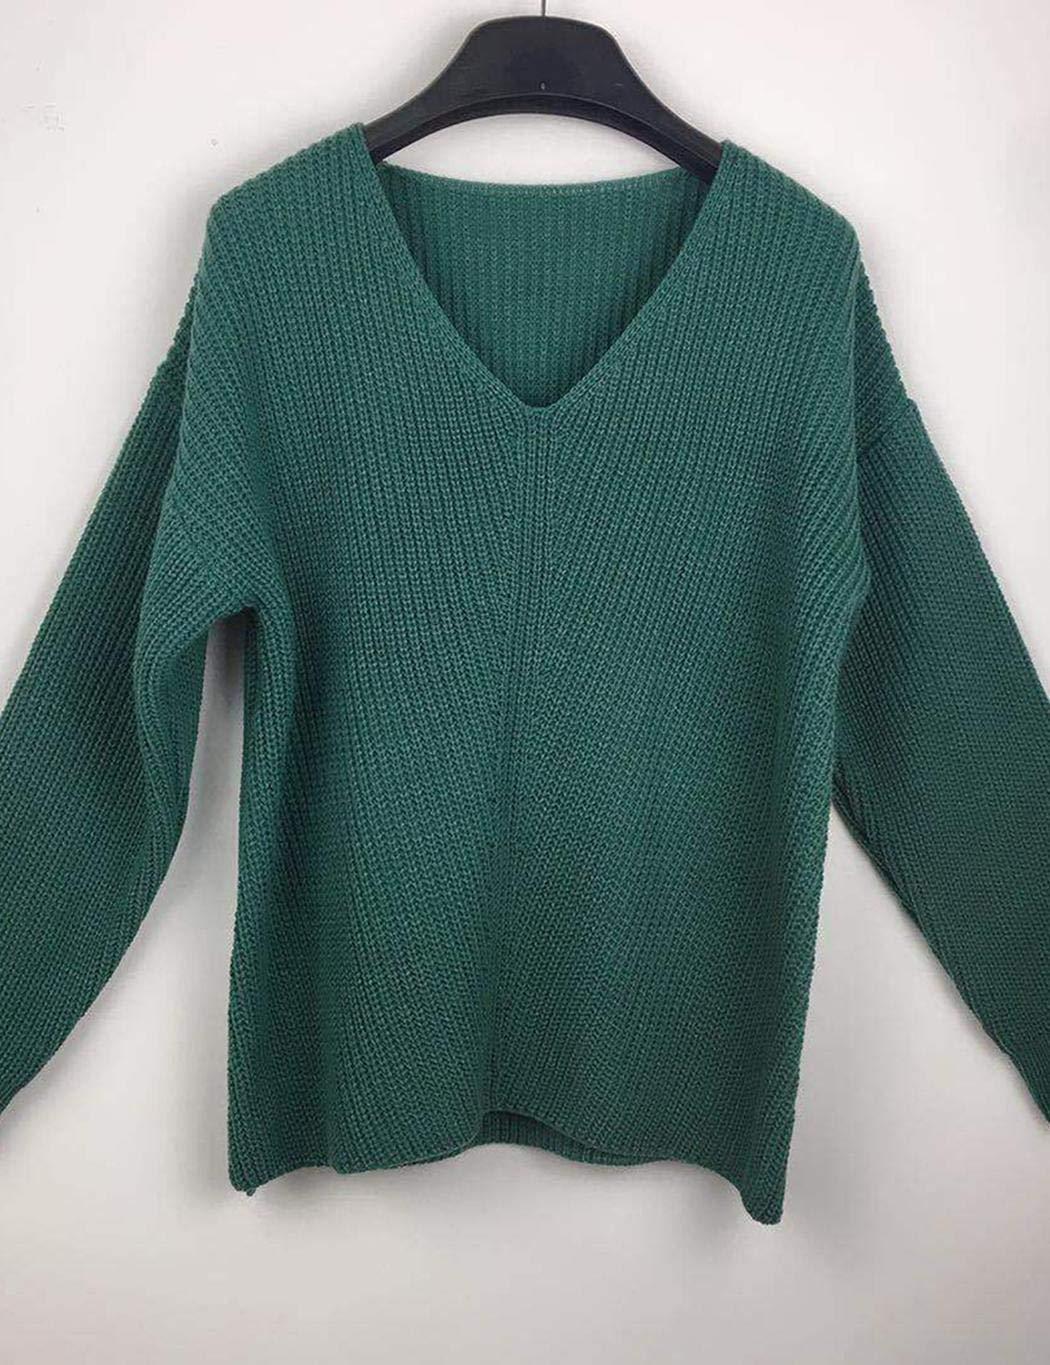 XioNiu Women Winter V Neck Sweater Knitted Solid Color Jumper Sweater Pullovers Green